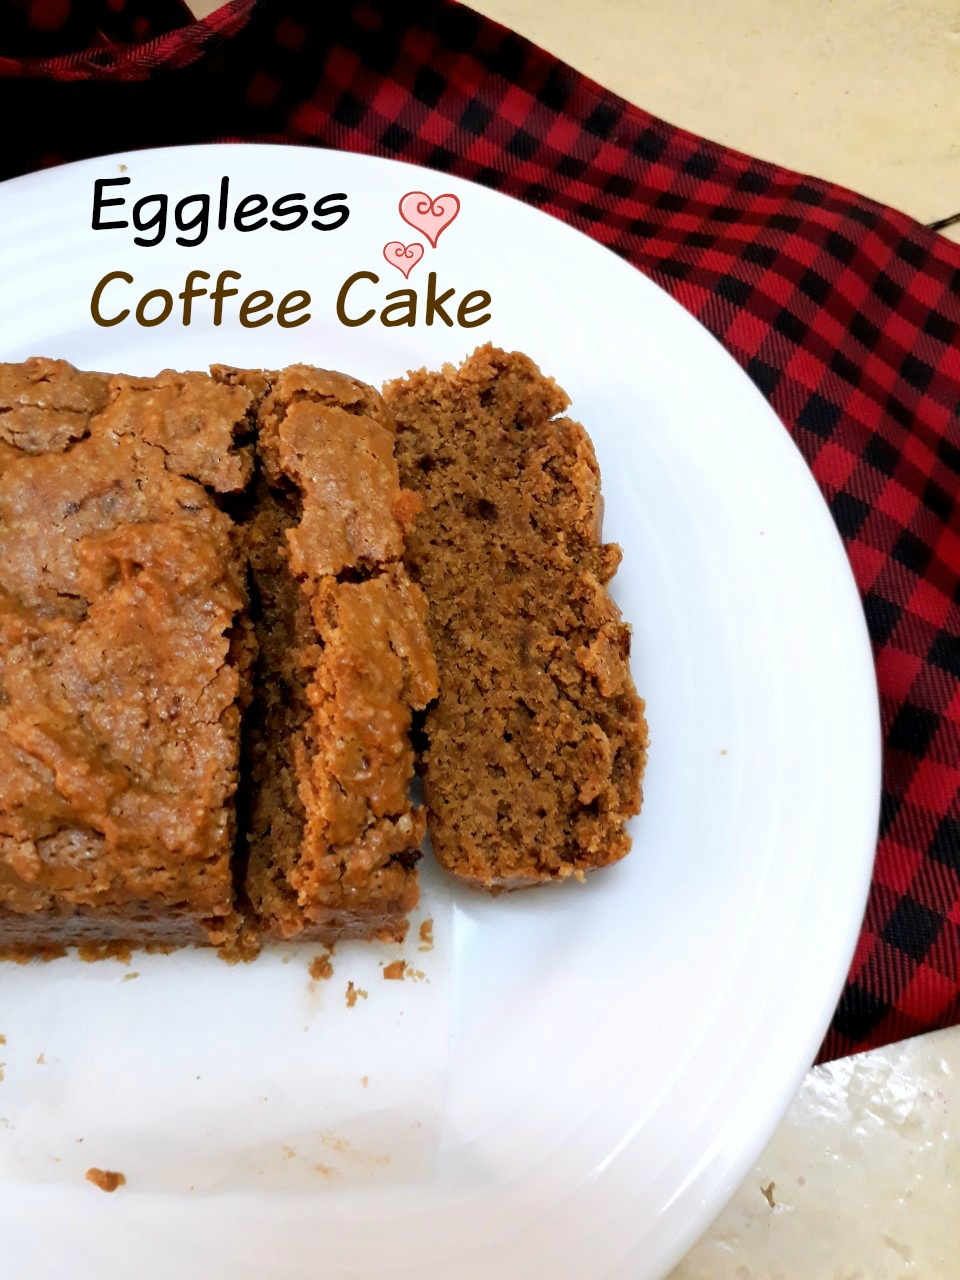 Eggless Coffee Cake